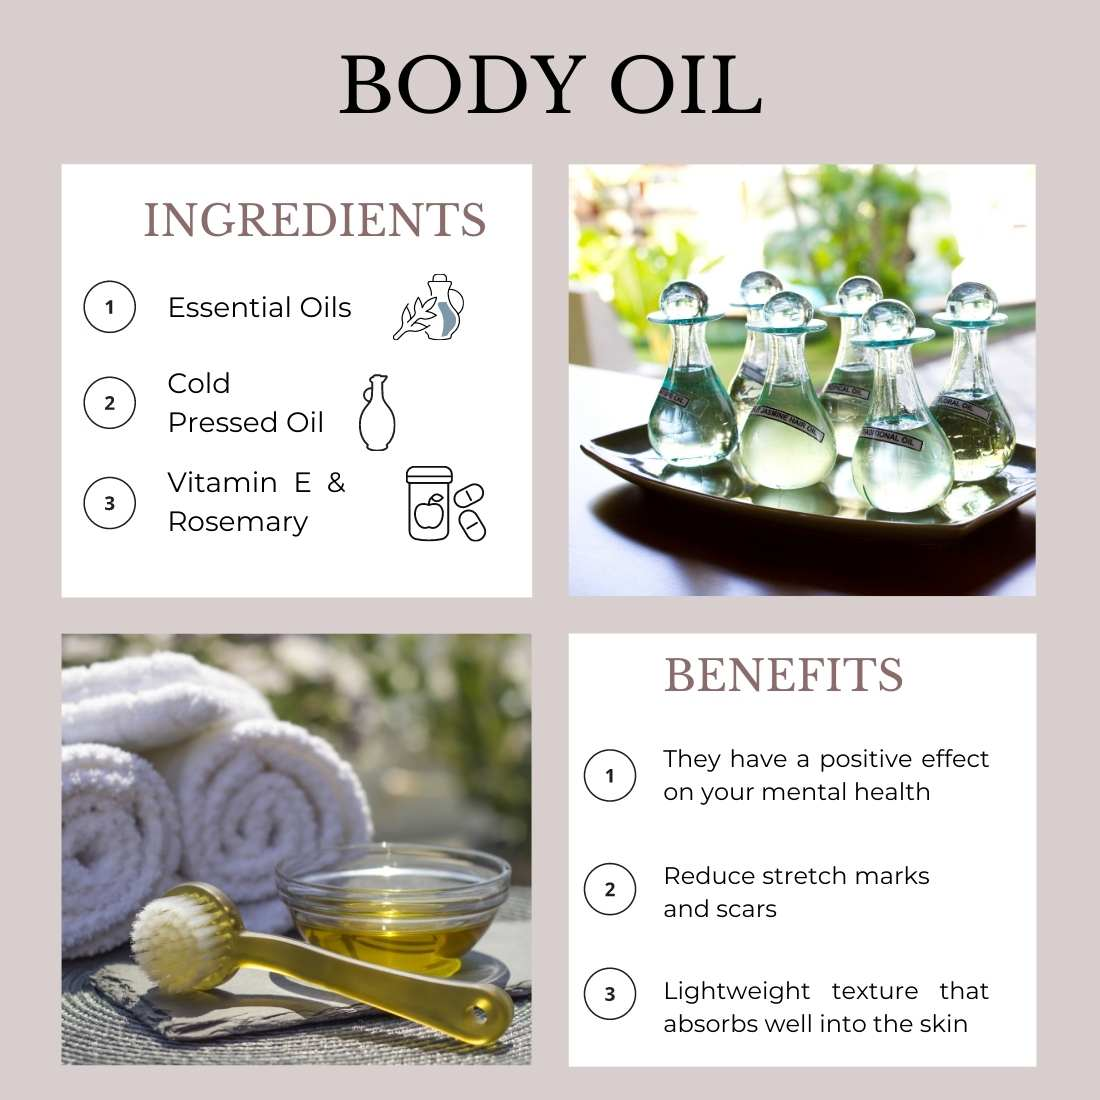 This is an image showing ingredients and benefits of Body oils